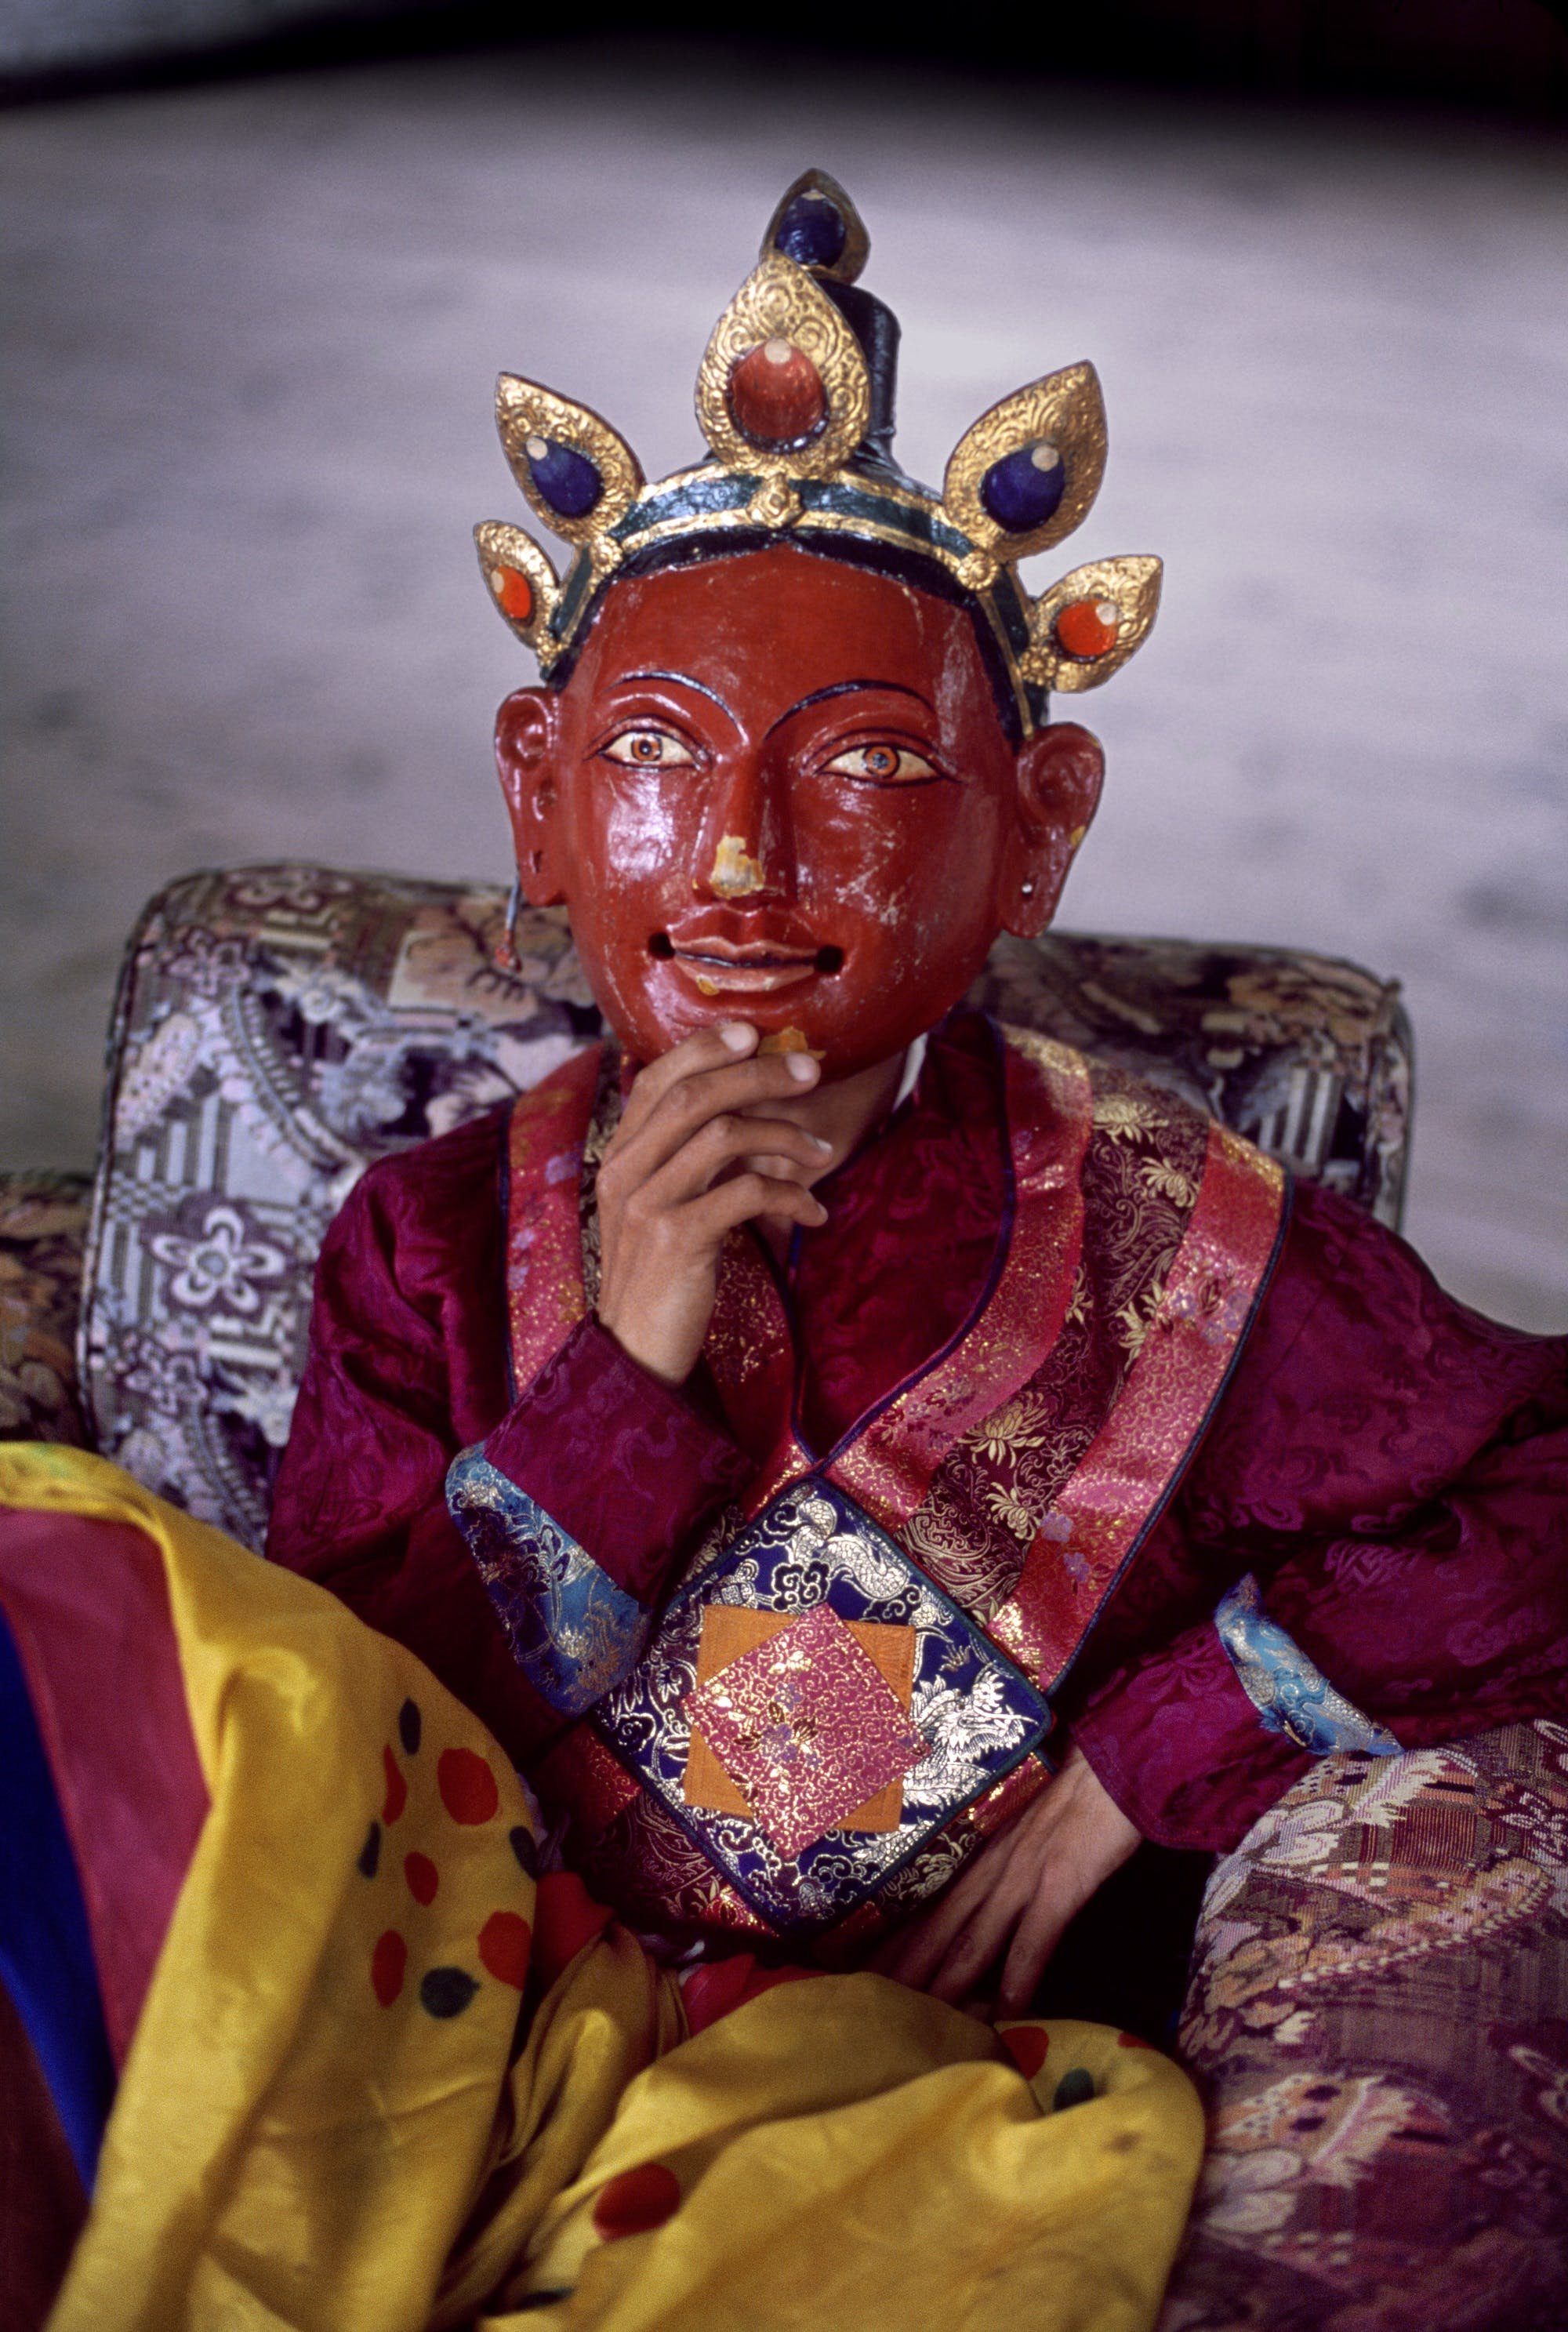 Bhutan by Steve McCurry